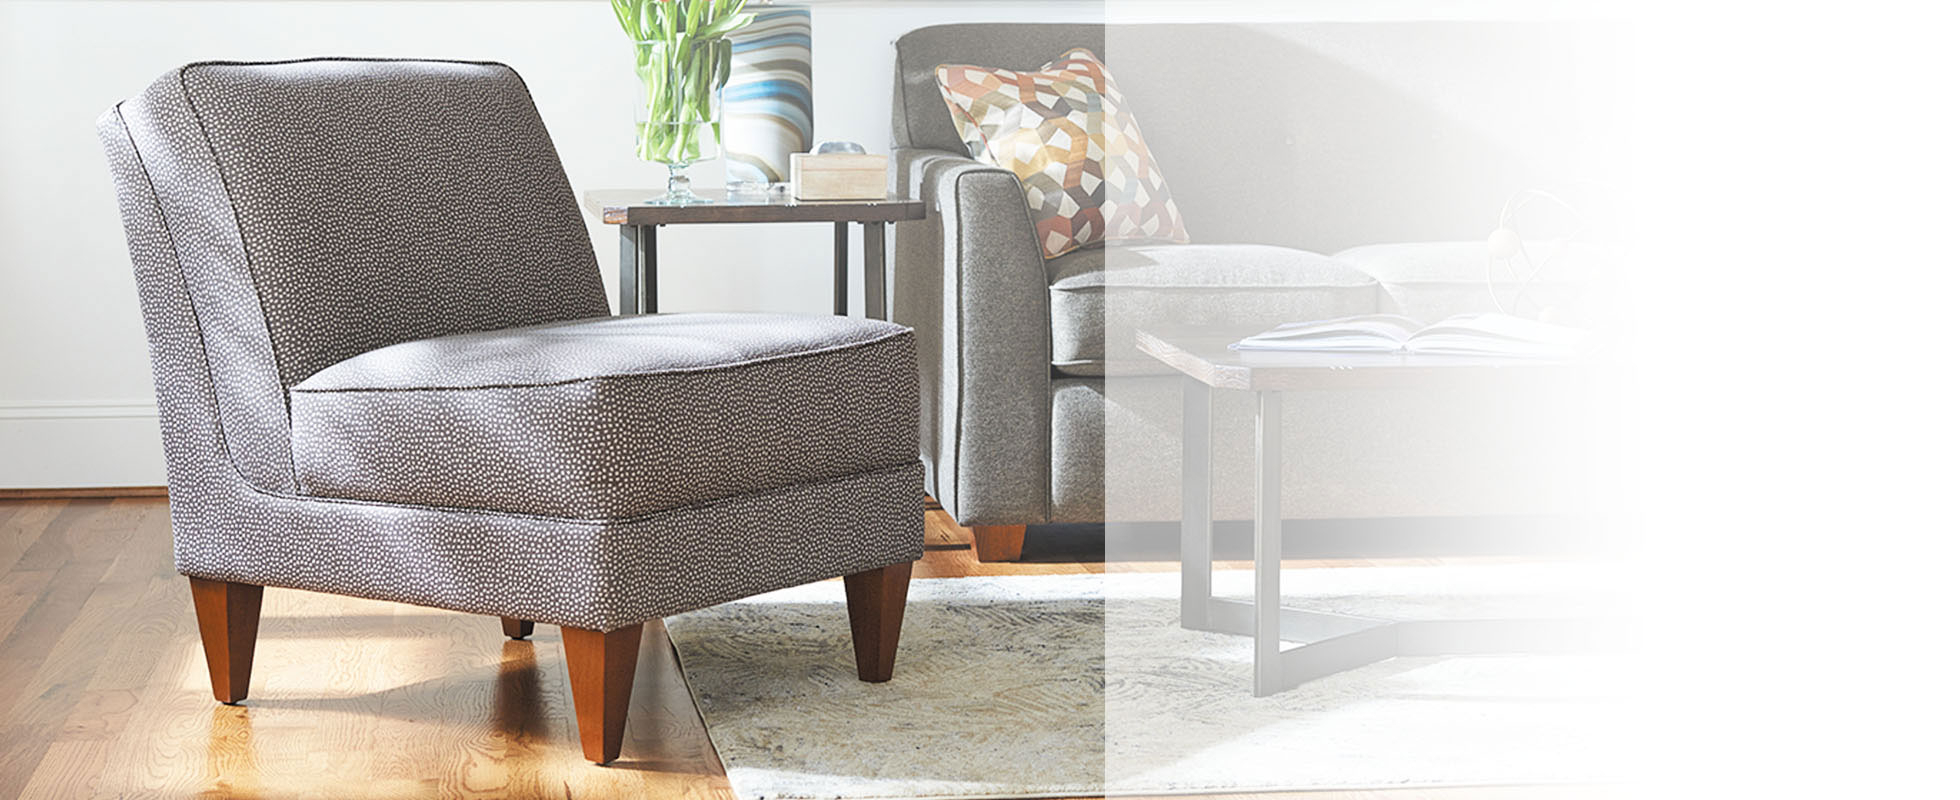 Living Room Chairs & Accent Chairs | La Z Boy In Modern Blue Fabric Rocking Arm Chairs (View 13 of 20)